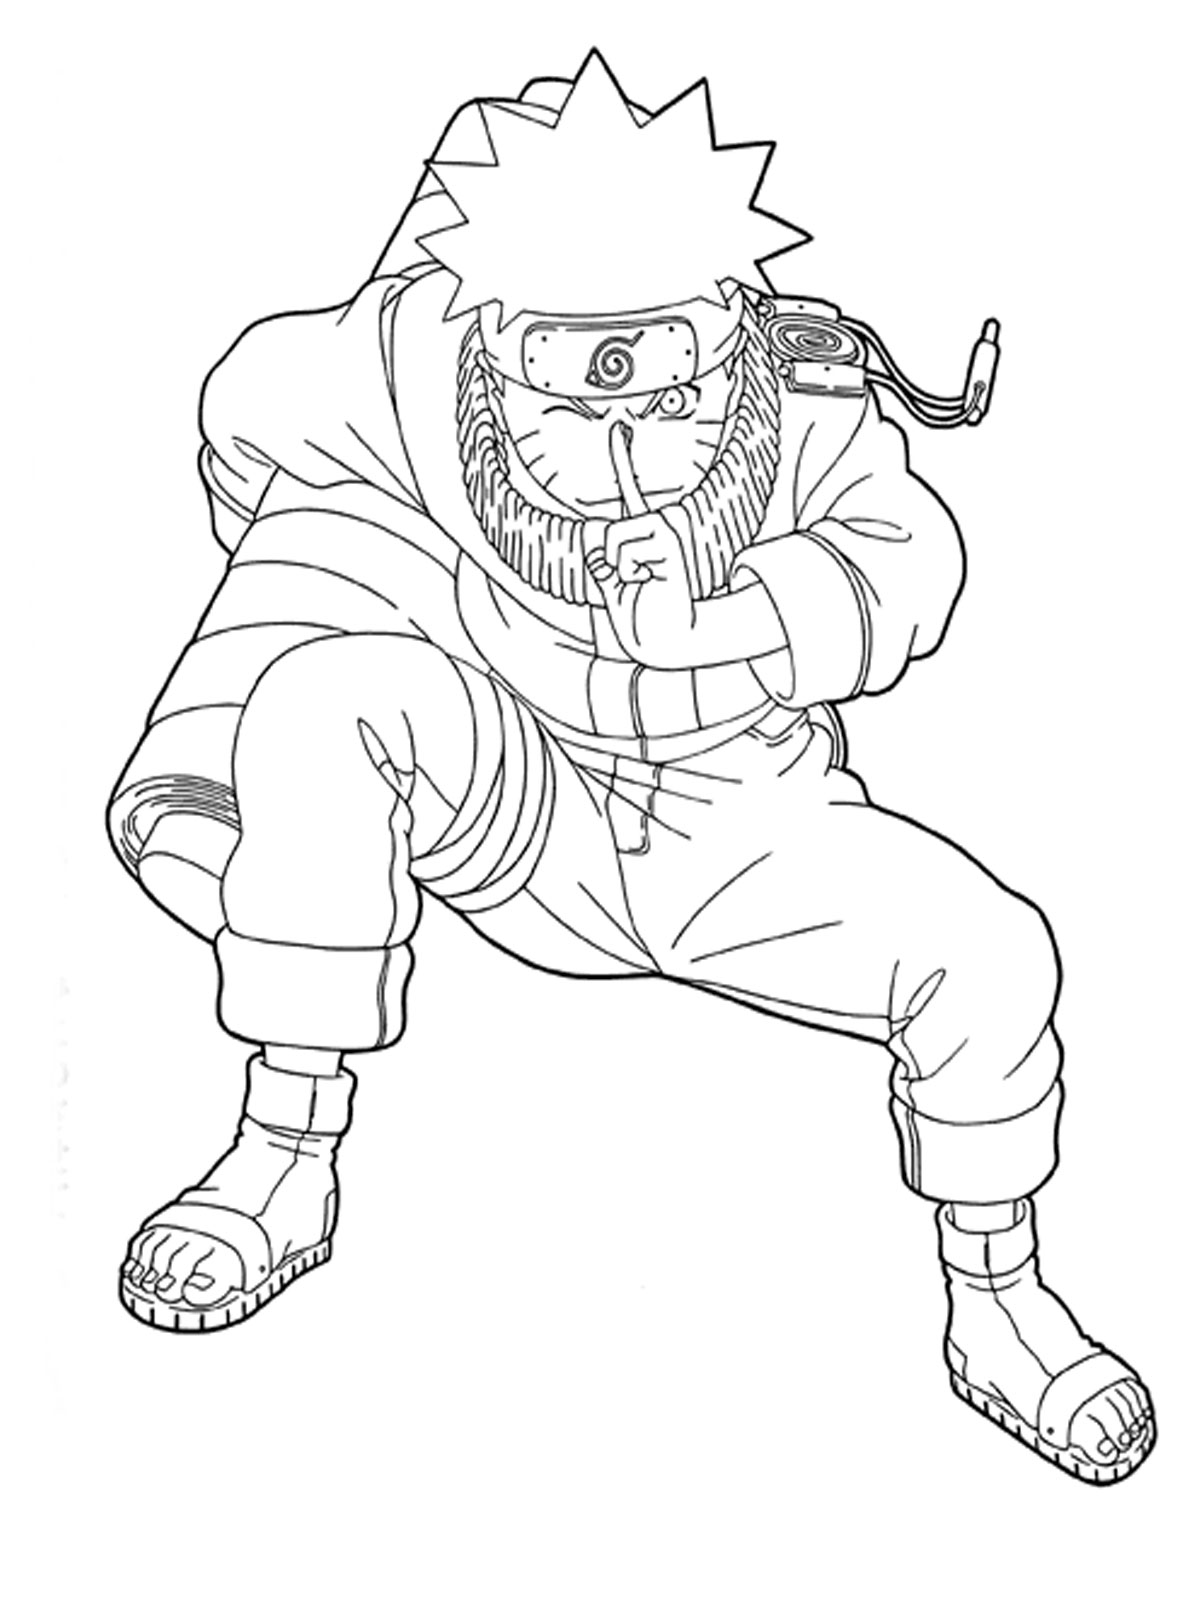 Naruto Coloring Pages Pdf : Free printable naruto coloring pages for kids